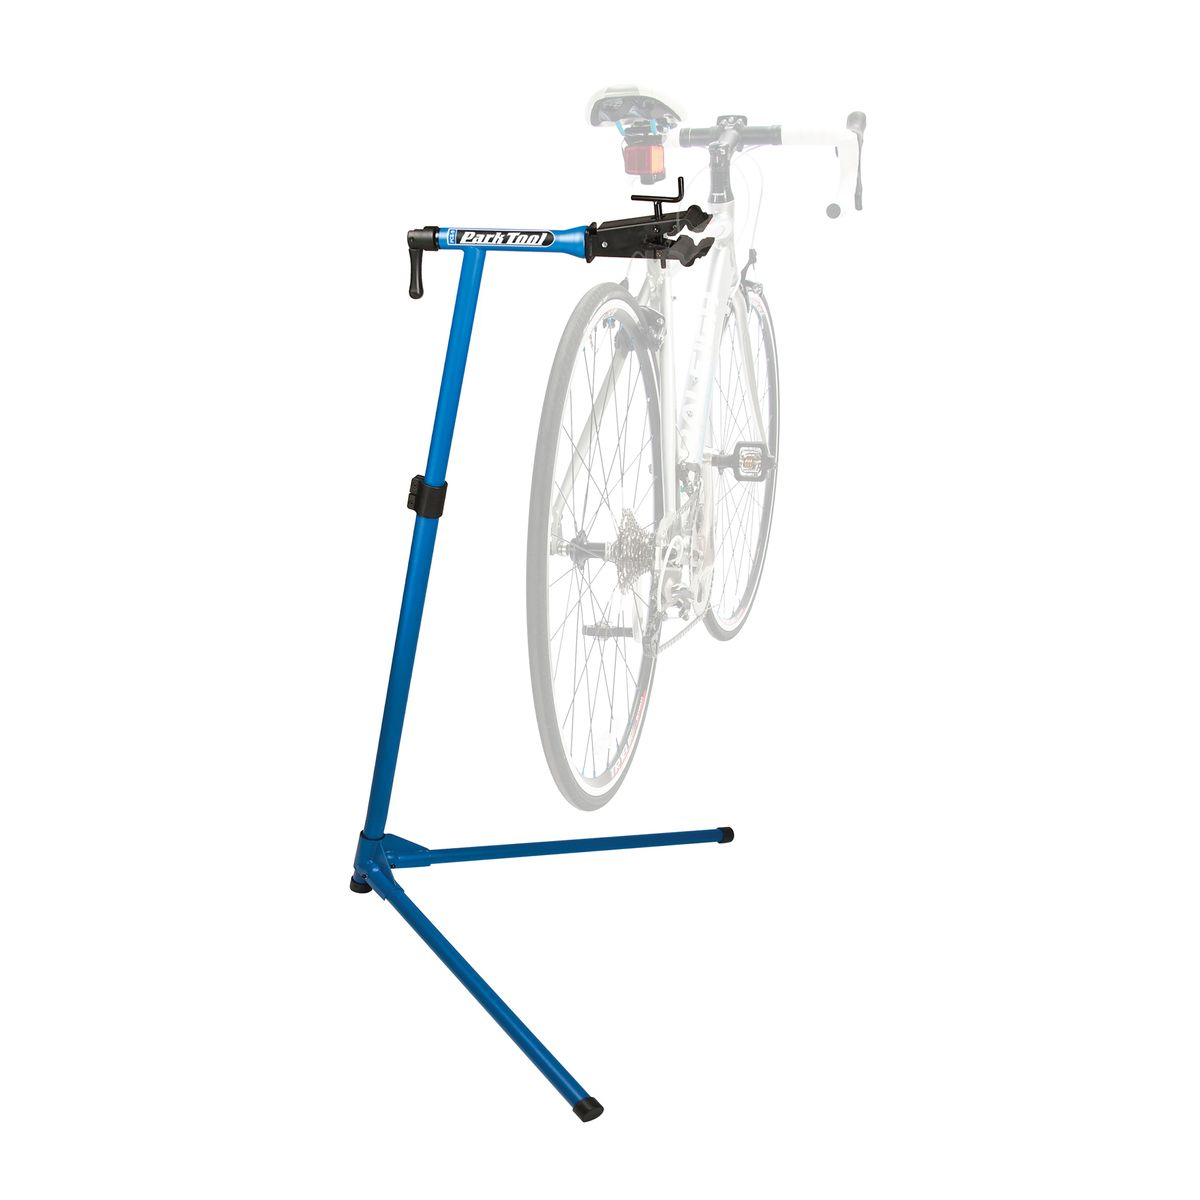 Park Tool PCS-9 assembly stand   Stands